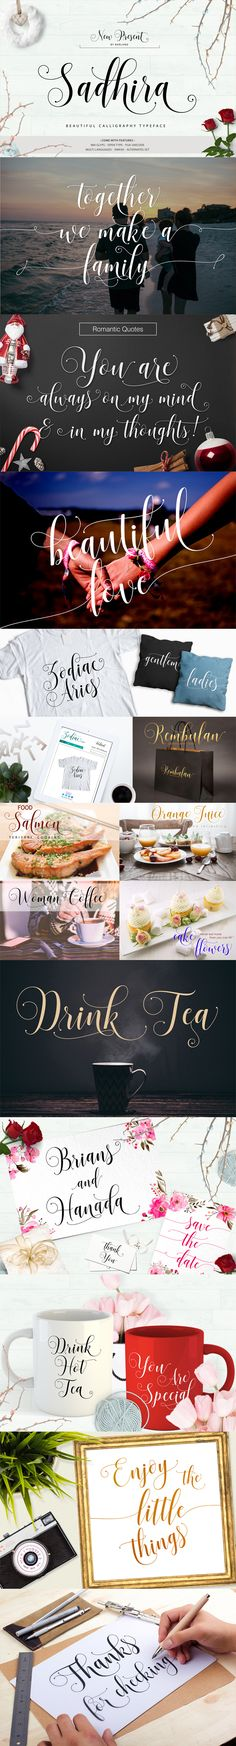 Sadhira Script Calligraphy Typeface — TrueType TTF #love #fancy • Available here → https://graphicriver.net/item/sadhira-script-calligraphy-typeface/17811290?ref=pxcr